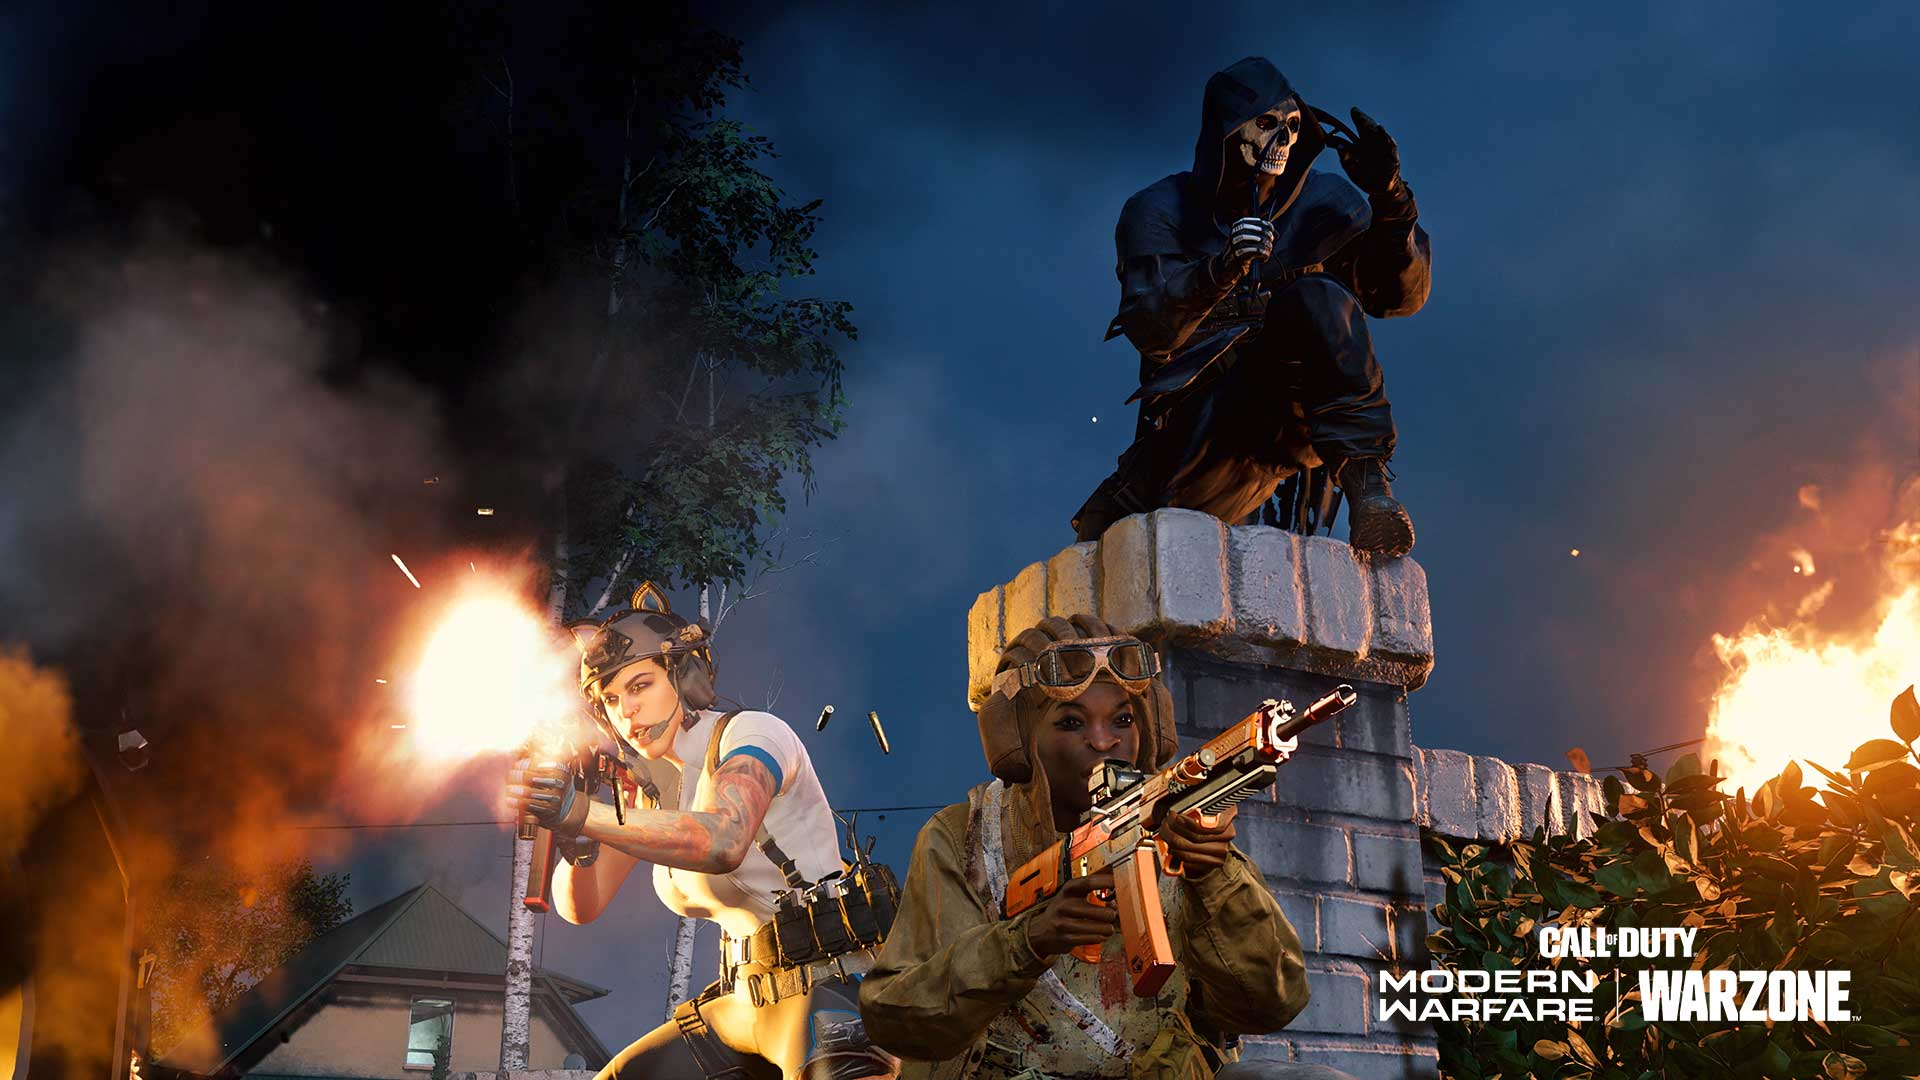 Ghost and the gang go trick or treating in Warzone.